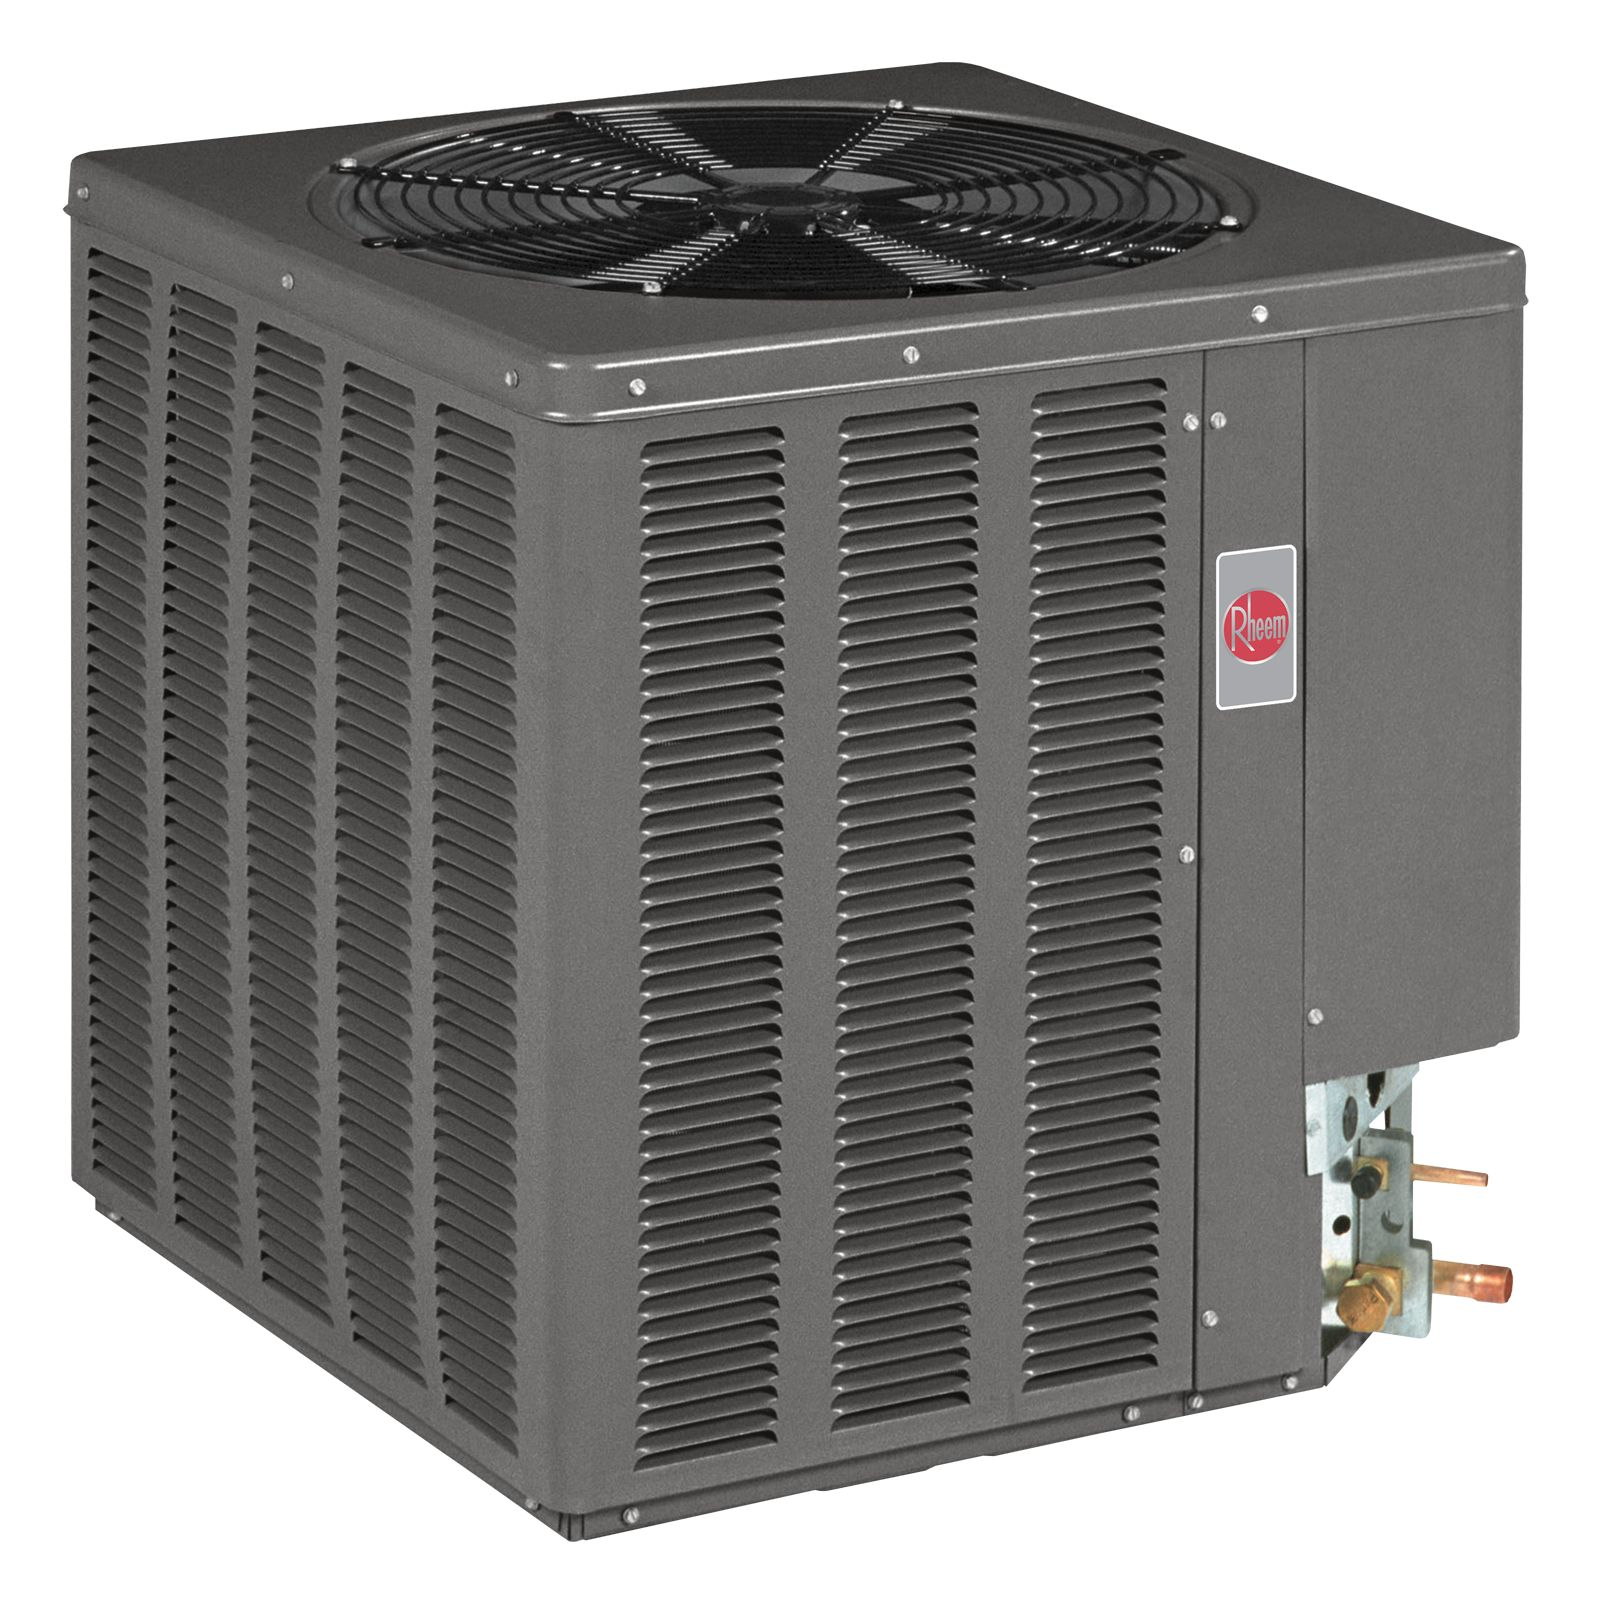 Rheem 16AJL24A01 - Value Series 2 Ton, 16 SEER, R410A Two-Stage Air Conditioner Condenser